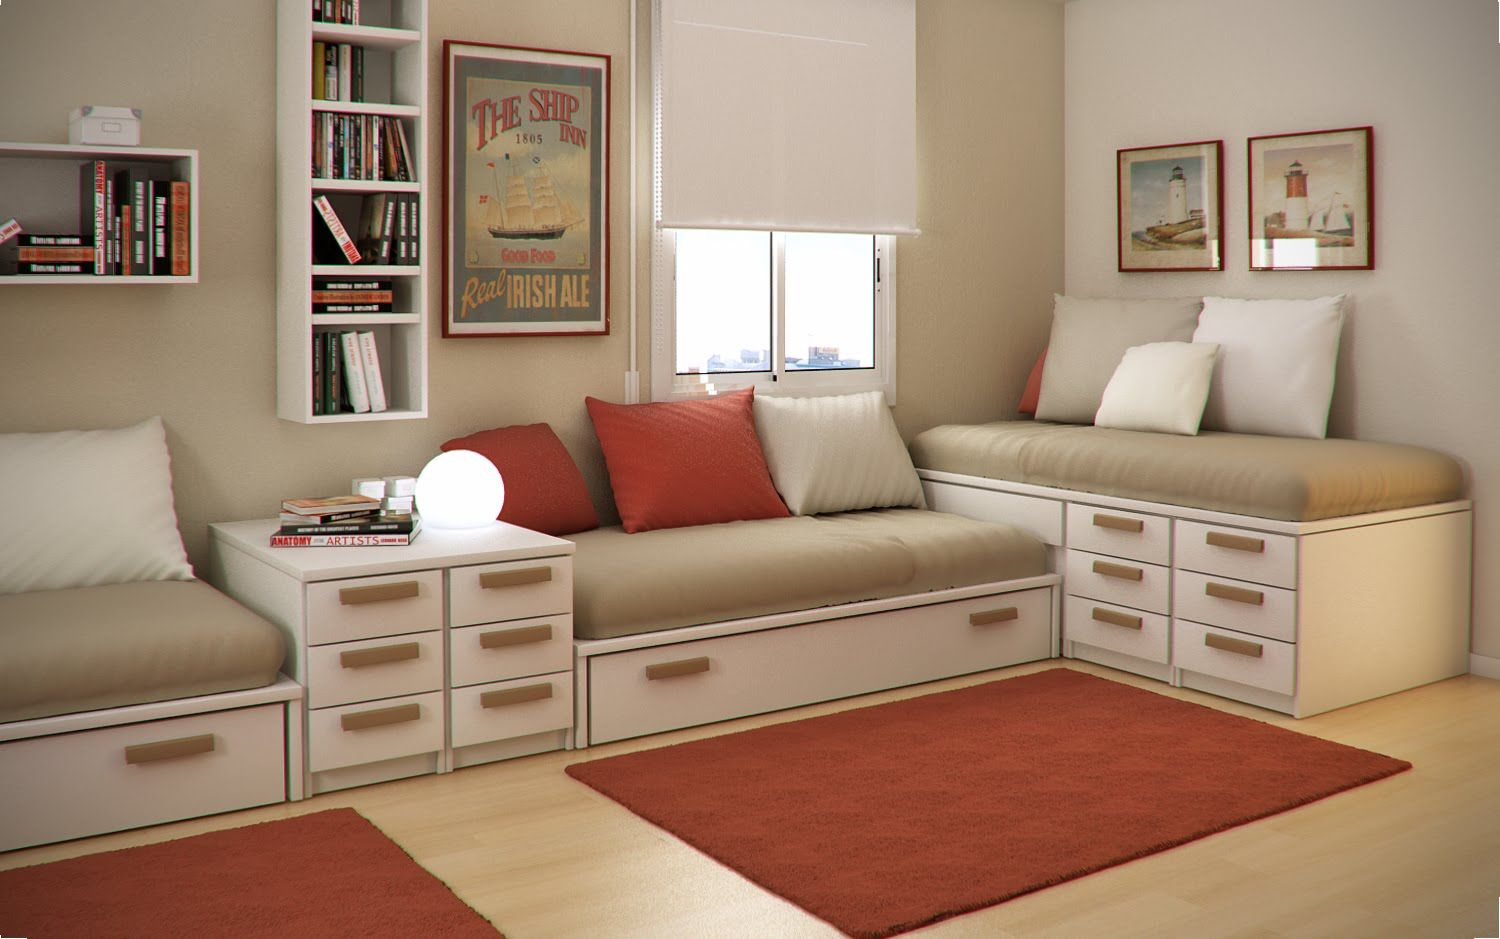 Childrens Storage Beds For Small Rooms 30 space saving beds for small rooms | relaxation room, kids rooms